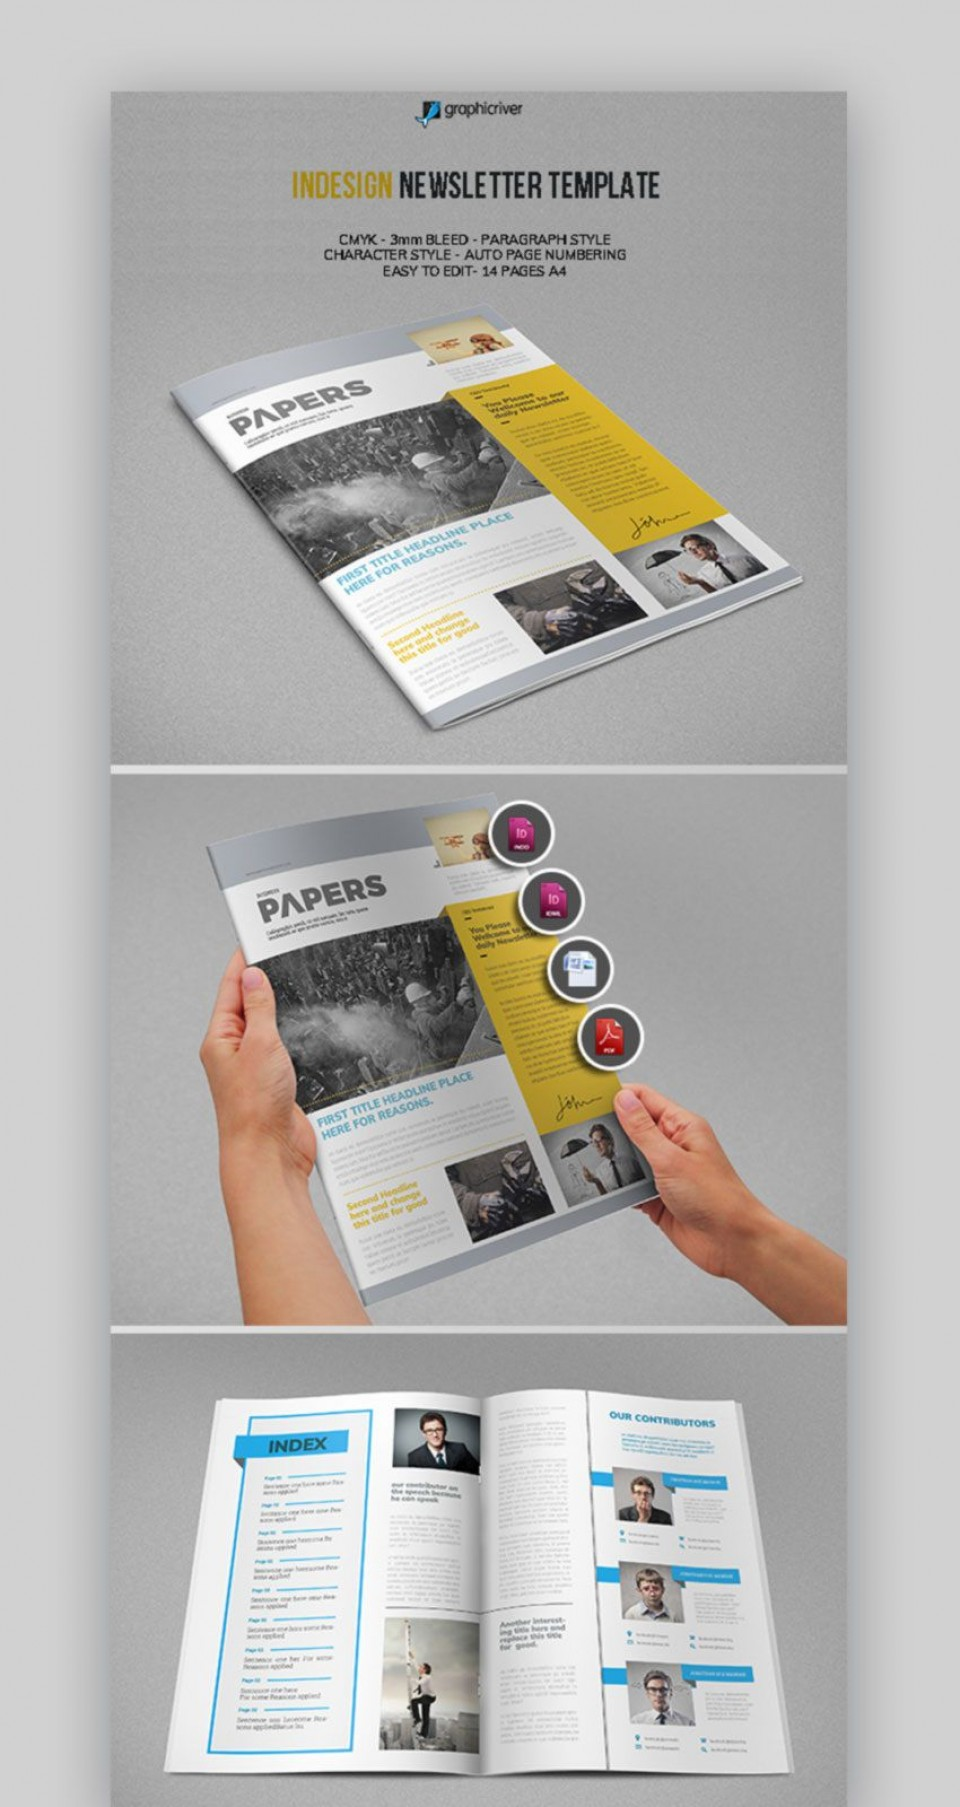 004 Phenomenal Publisher Newsletter Template Free Image  Microsoft Office Download960